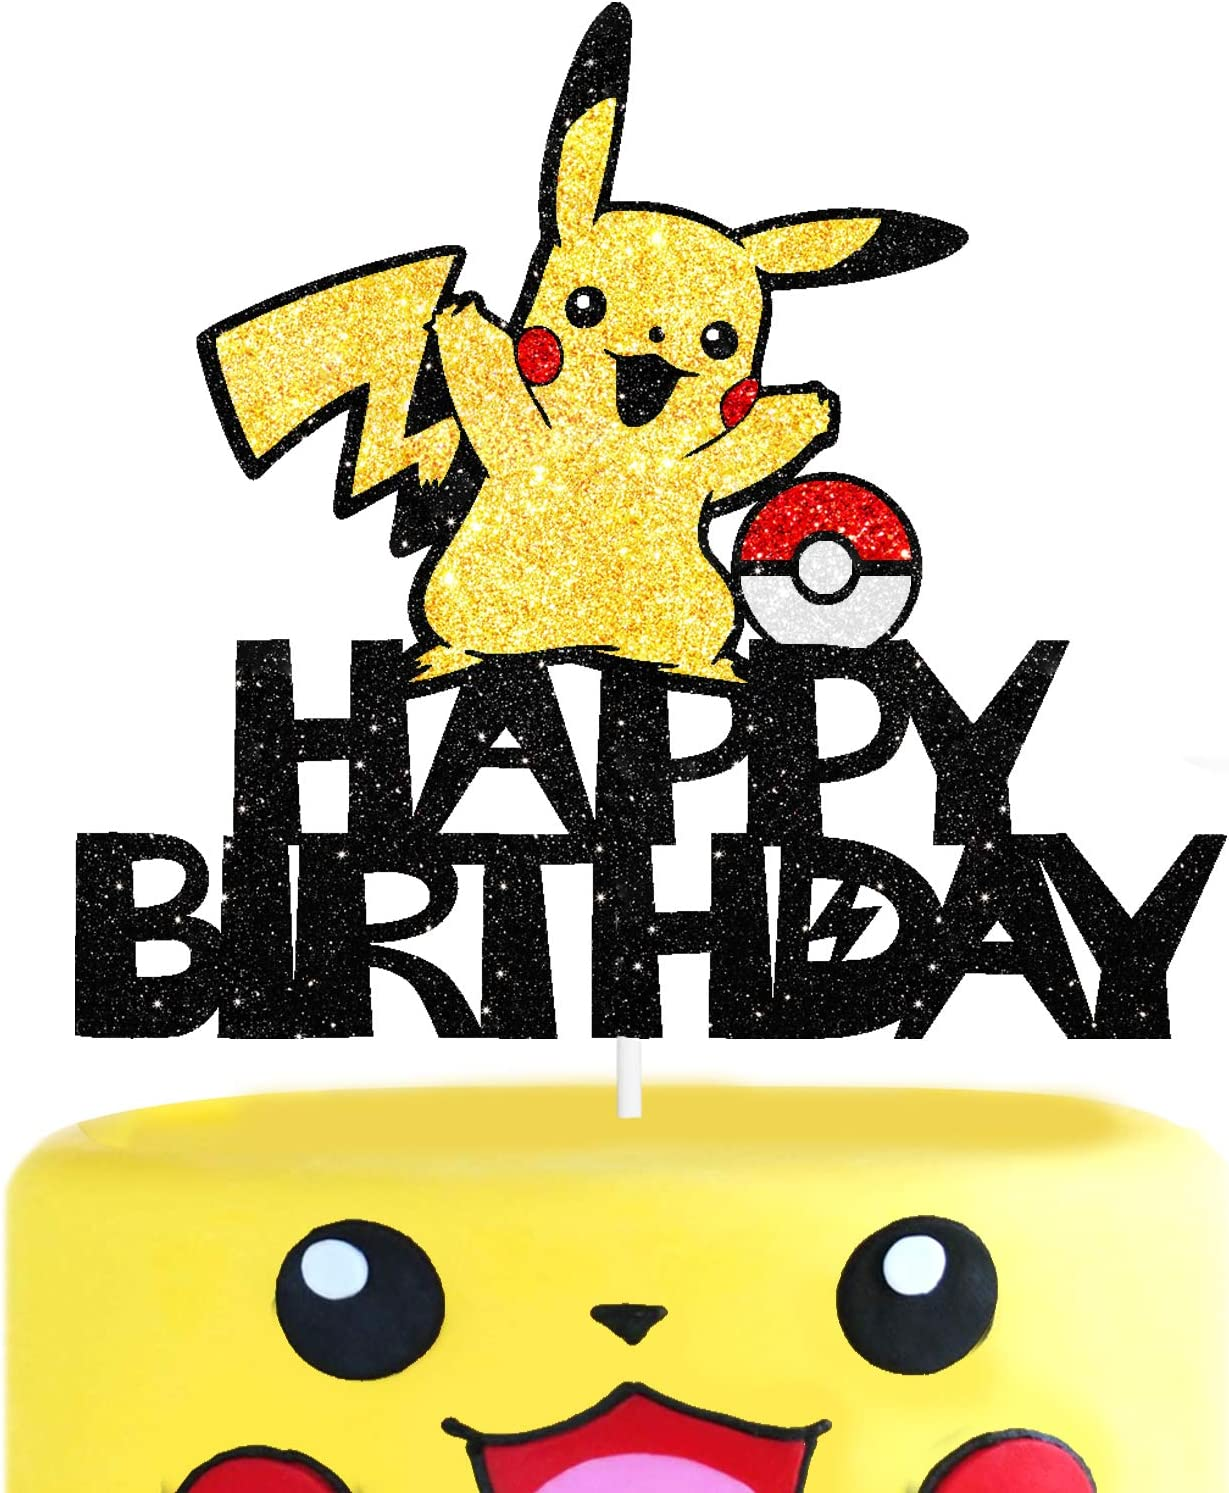 Cartoon Electric Pet Cake Topper Video Game Happy Birthday Theme Gold Glitter Decor for Baby Shower Birthday Party Decorations Supplies